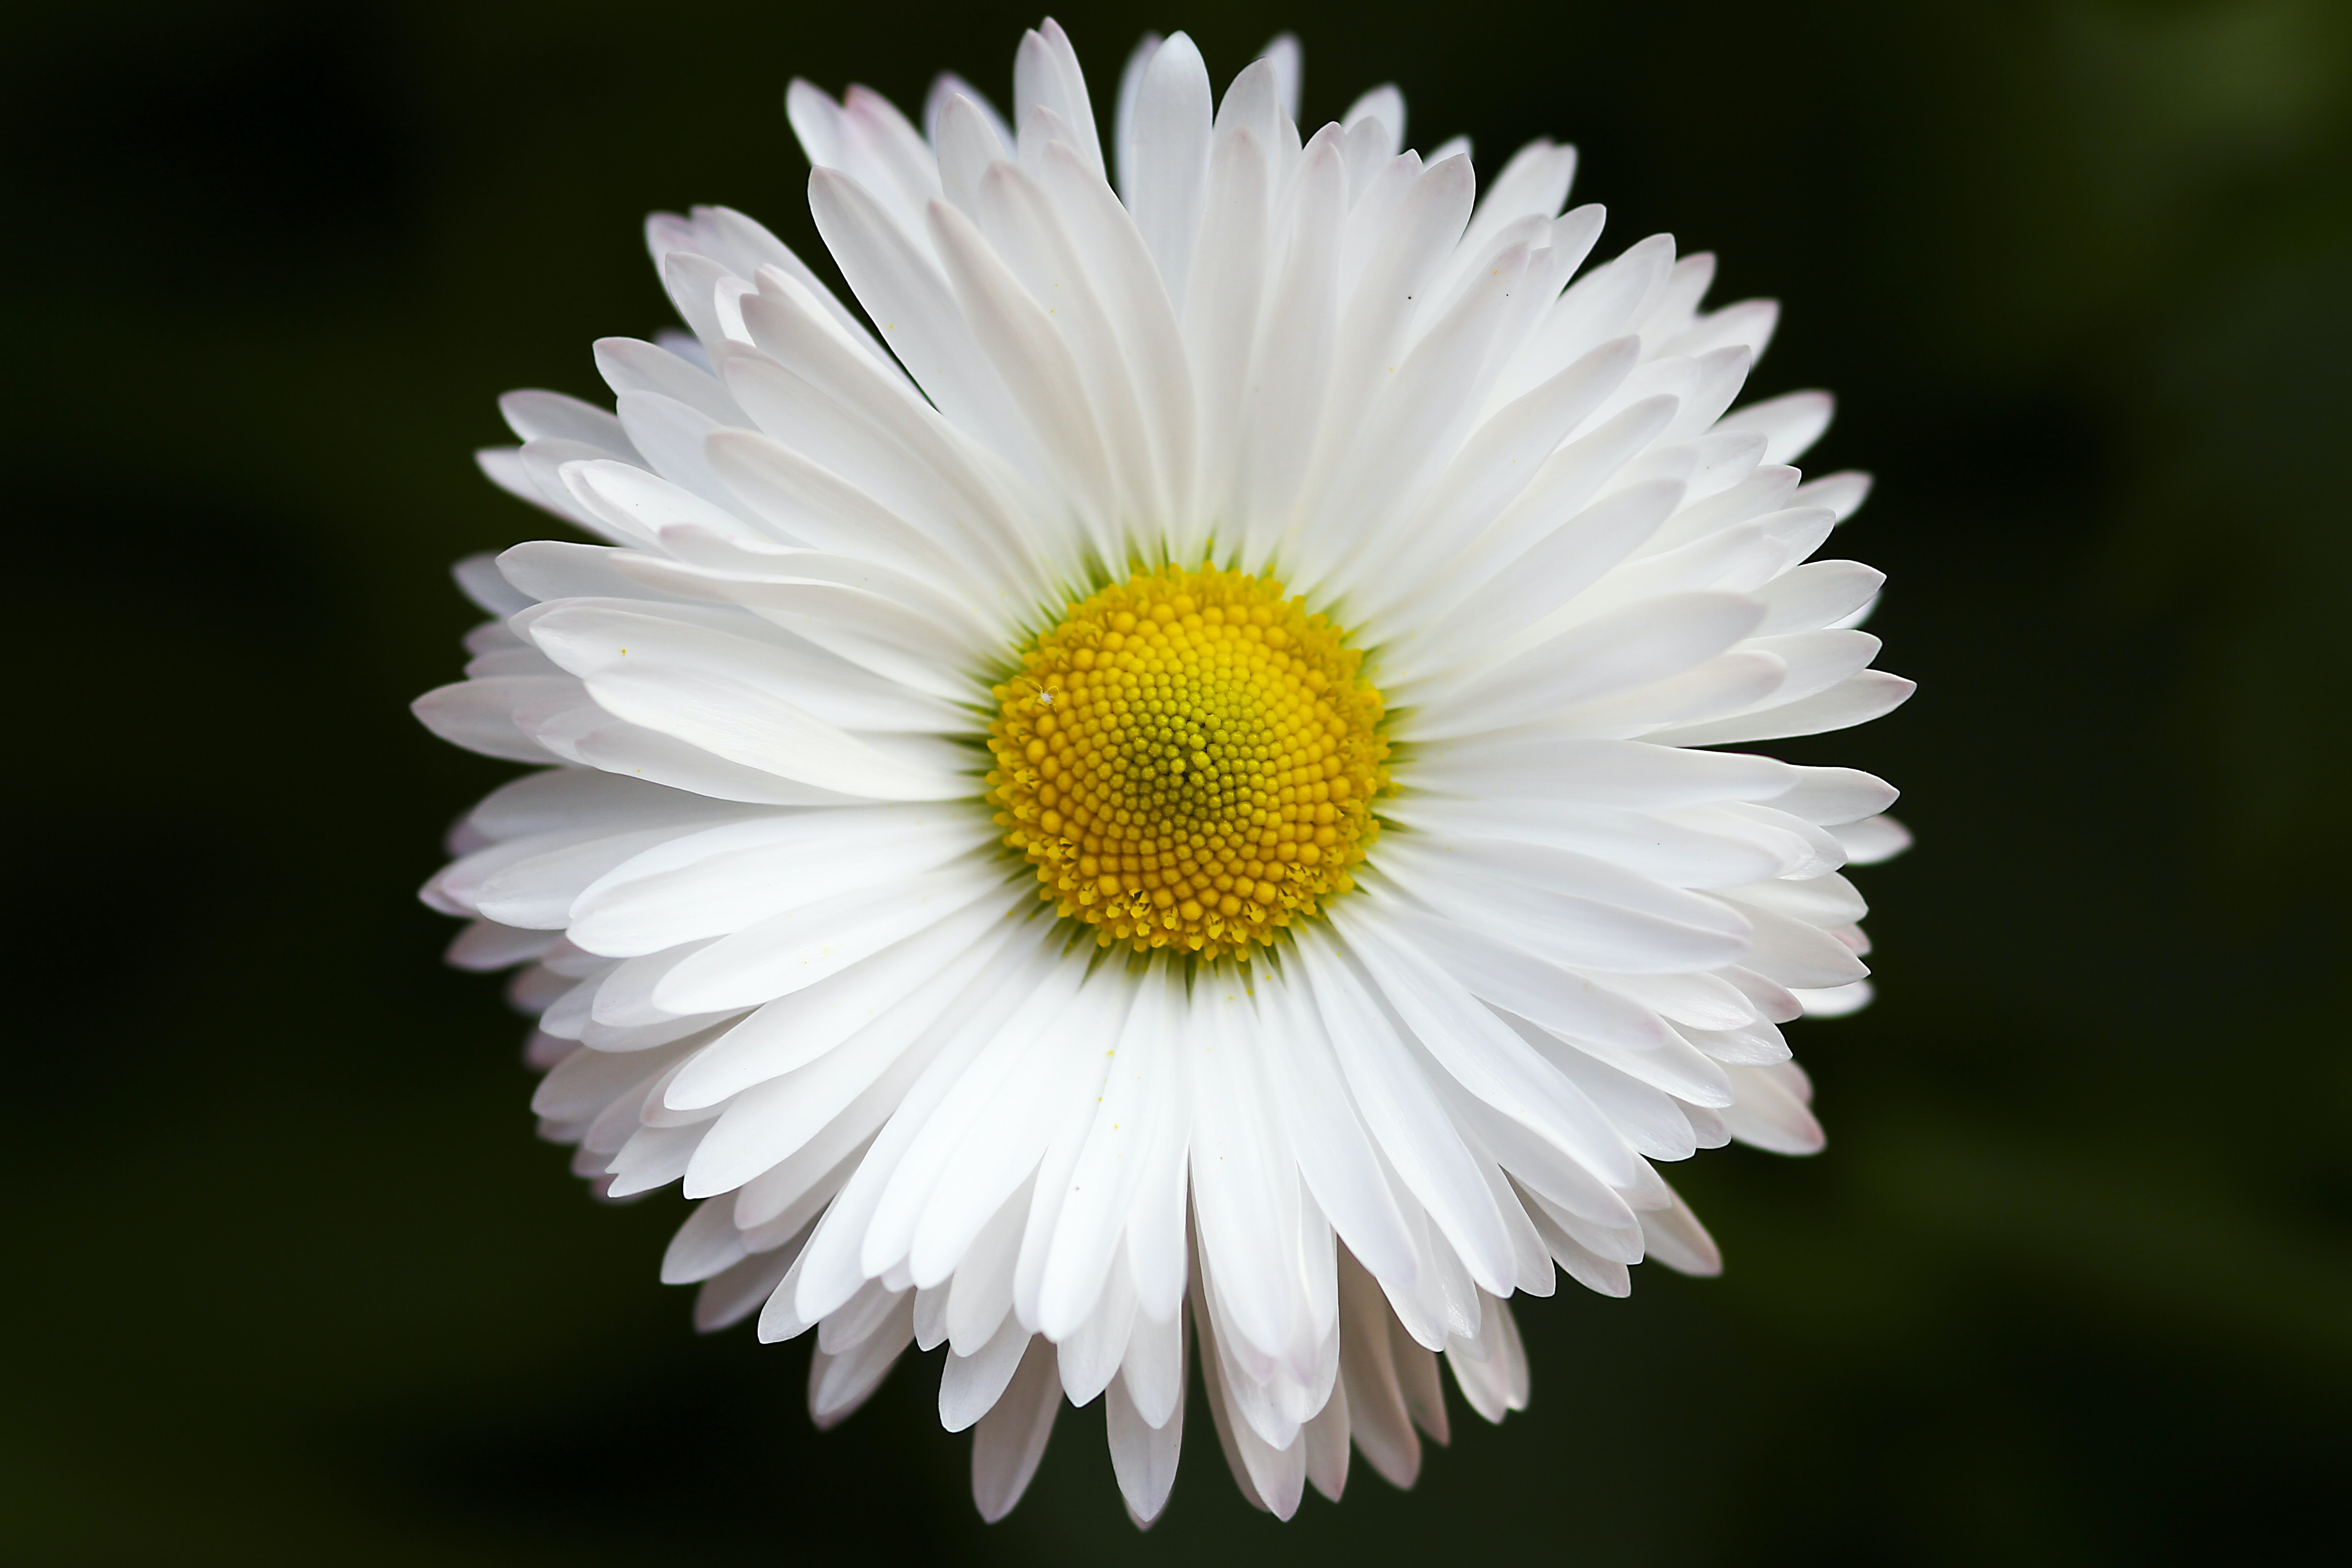 Close-up of a white daisy flower